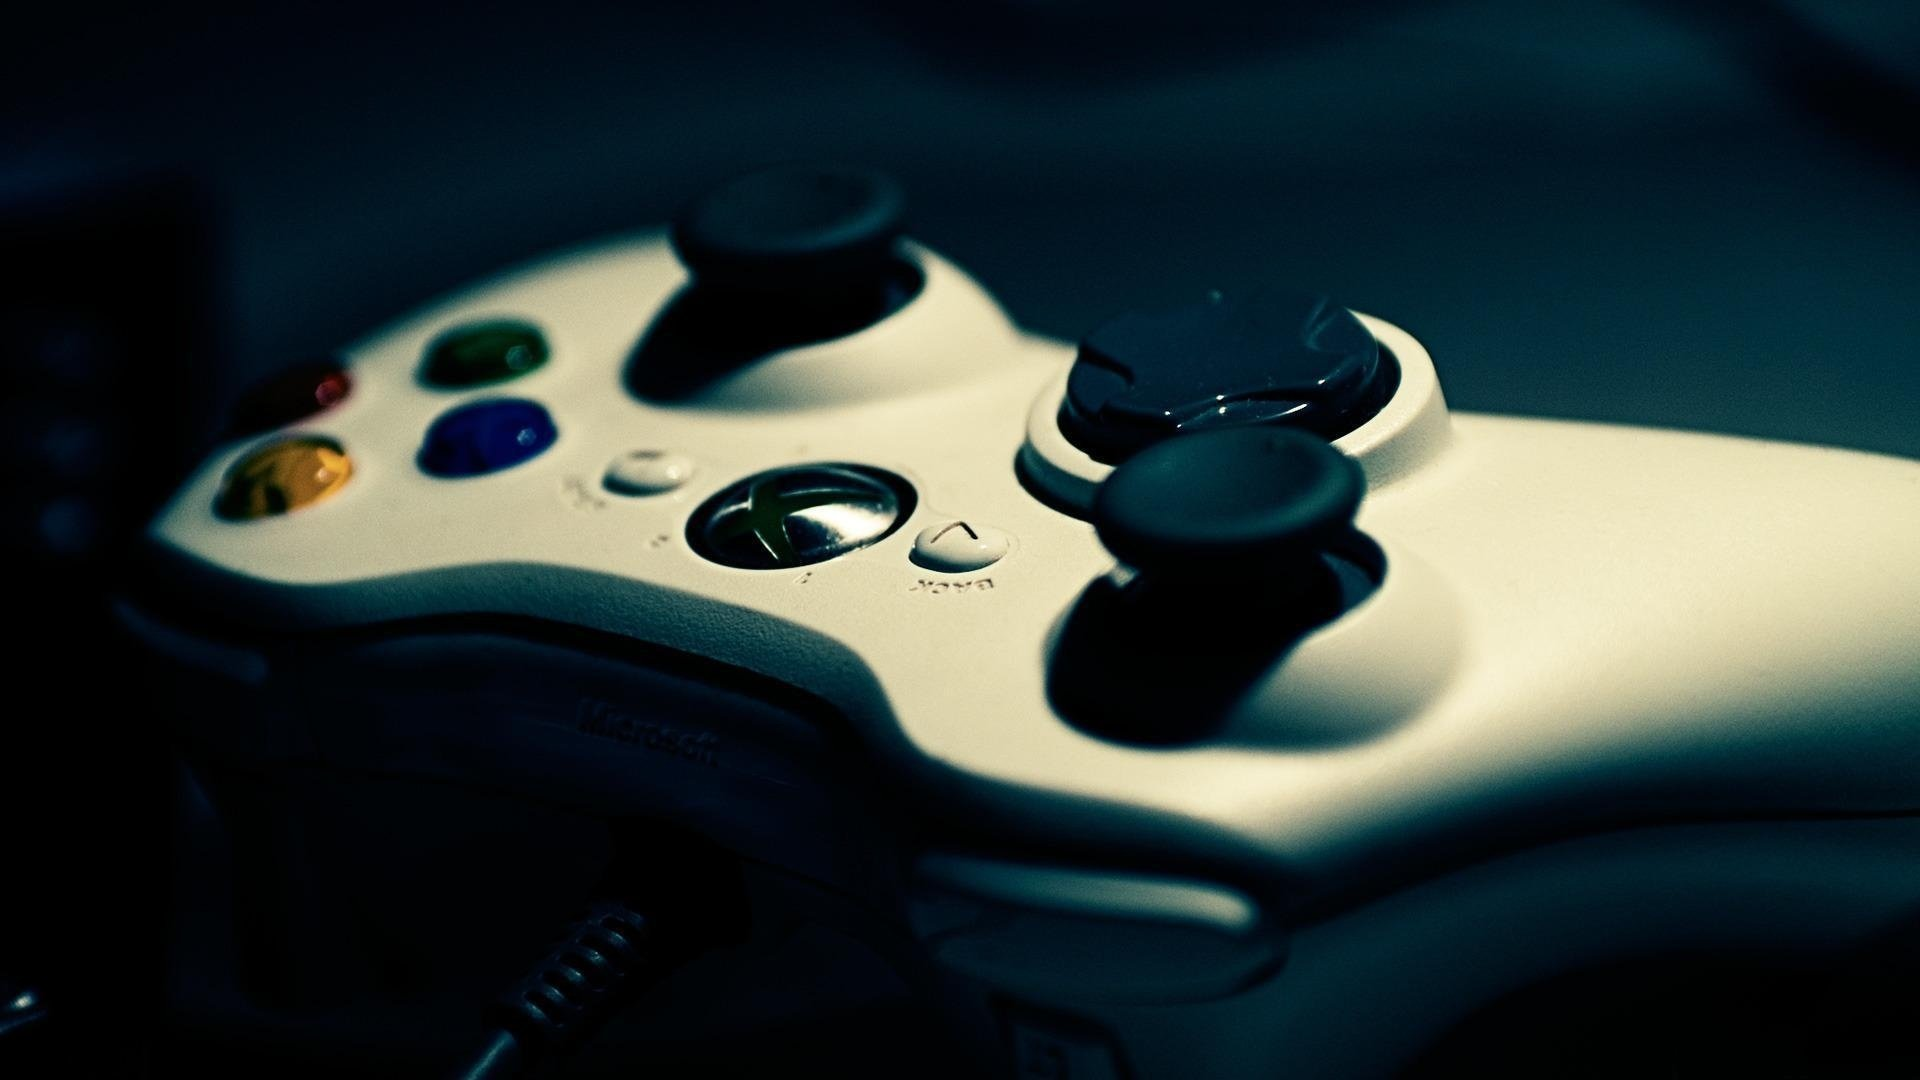 Download free xbox live gamer pictures 86 best Austin Ally images on Pinterest Austin and ally, Laura